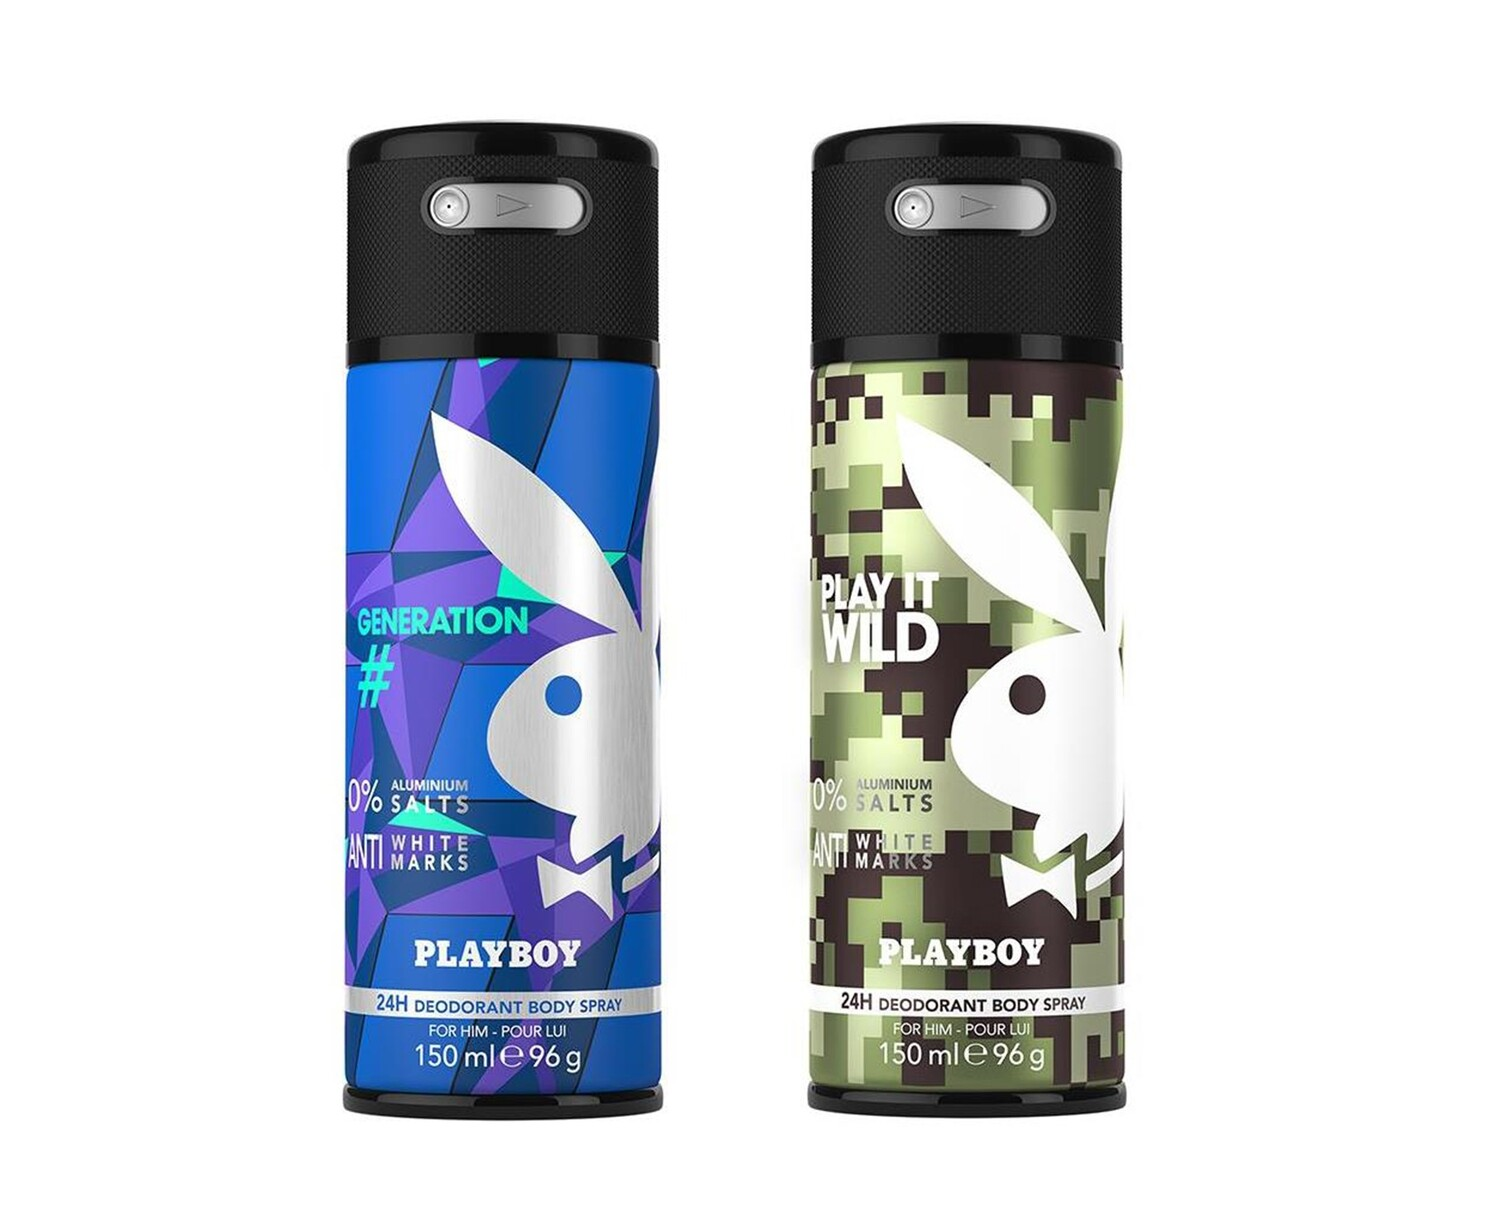 Playboy Generation + Wild Deo New Combo Set - Pack of 2 Men